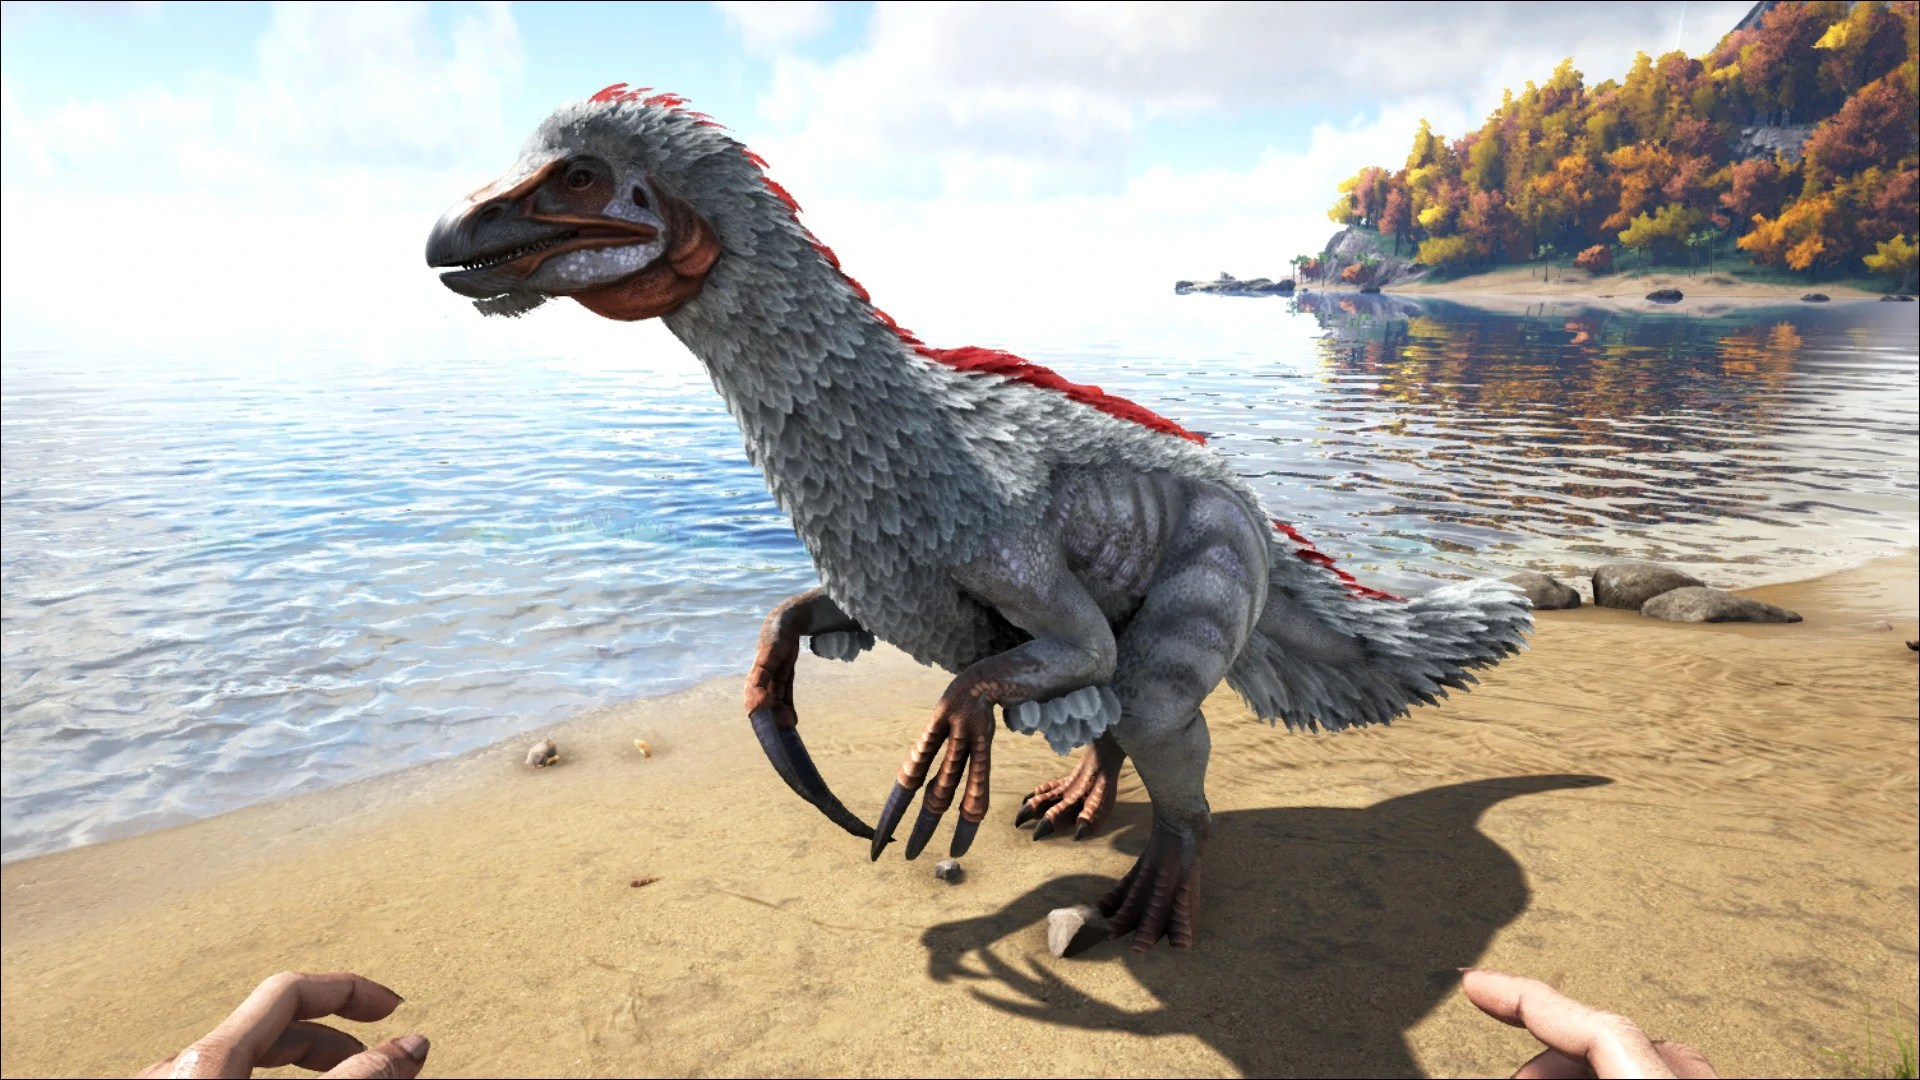 Therizinosaur Official ARK Survival Evolved Wiki